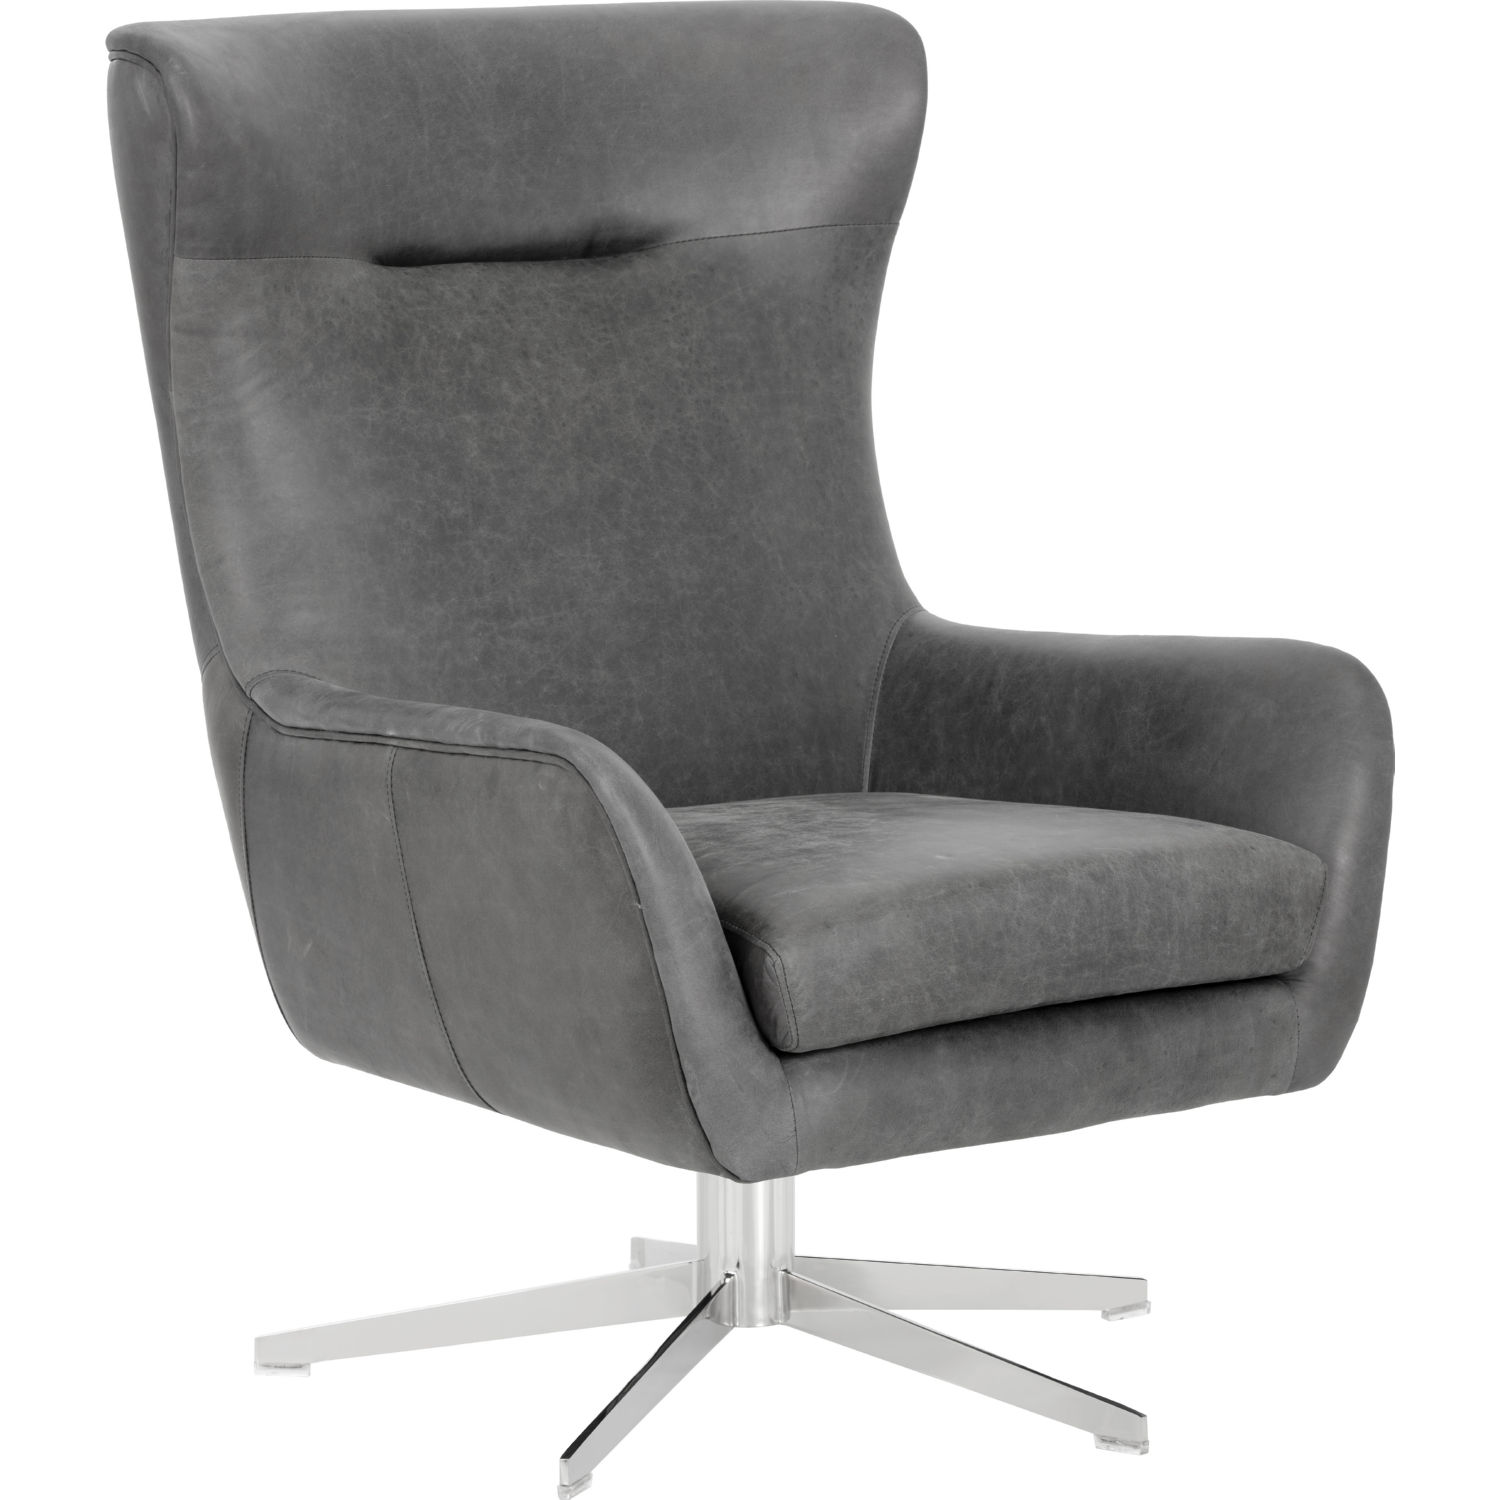 Outstanding Judy Swivel Accent Chair In Black Top Grain Leather On Stainless By Sunpan Ncnpc Chair Design For Home Ncnpcorg